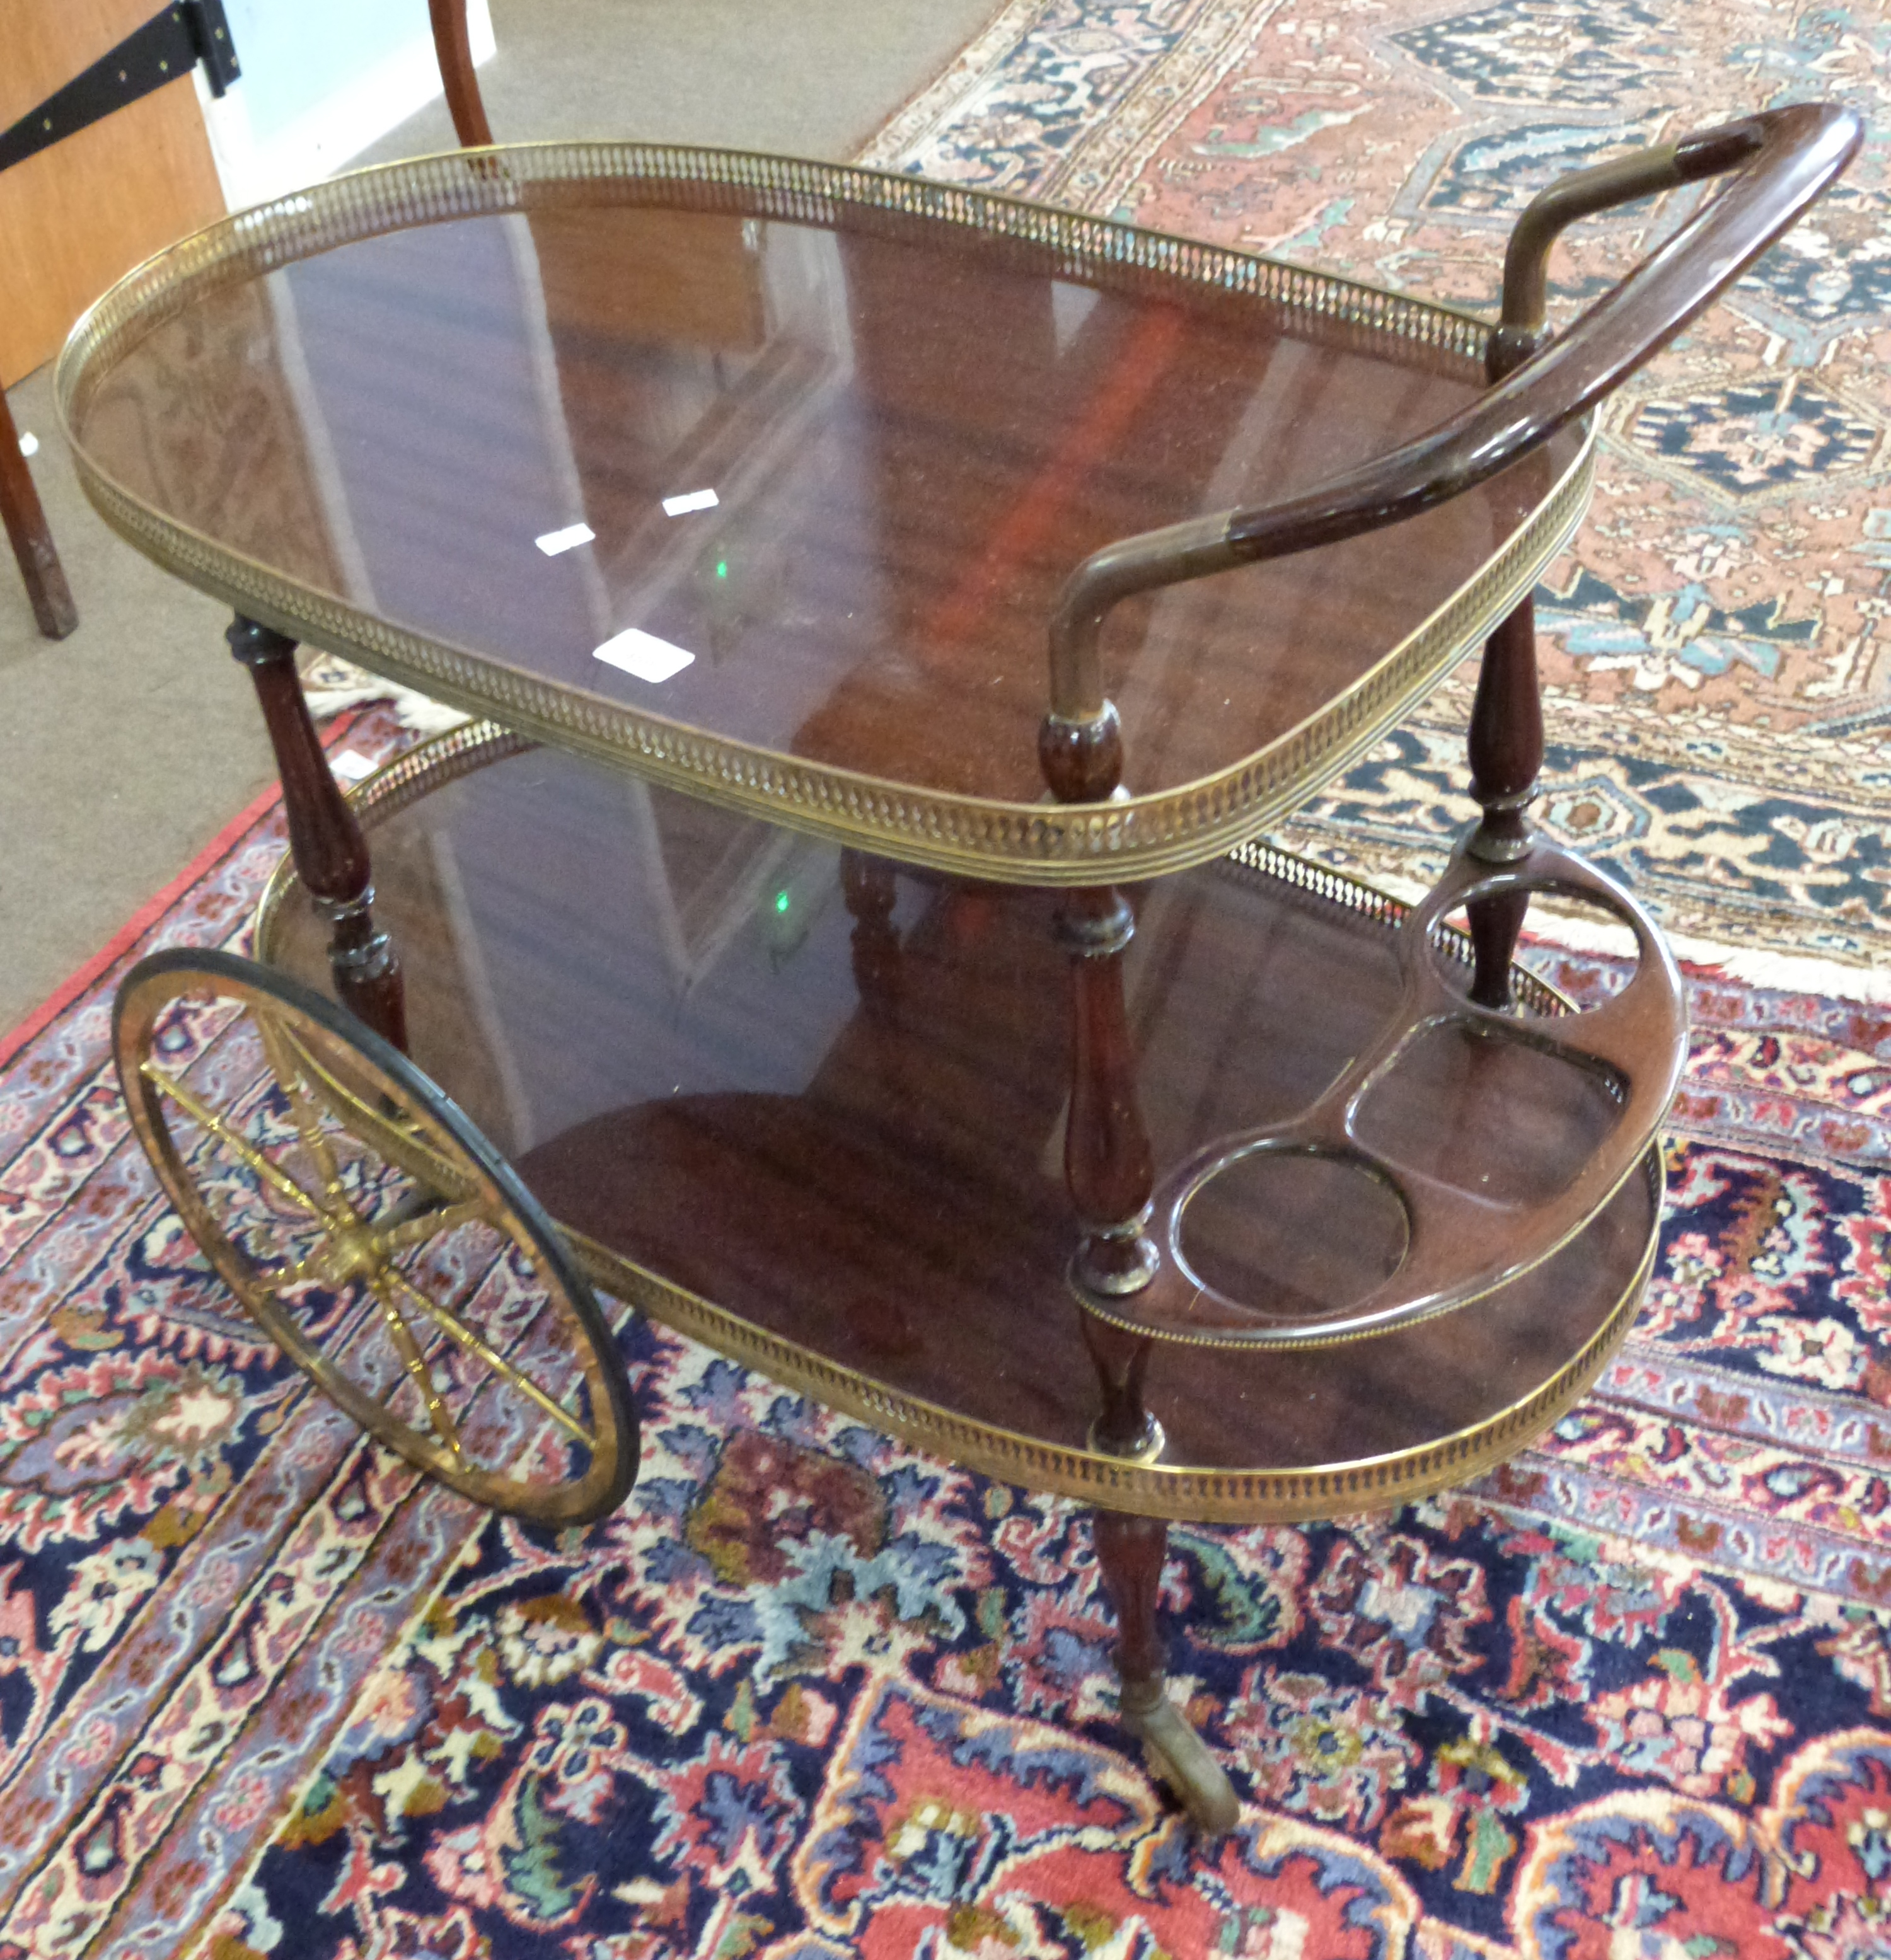 Mahogany effect and gilt decorative tea trolley, length approx 80cm - Image 3 of 3